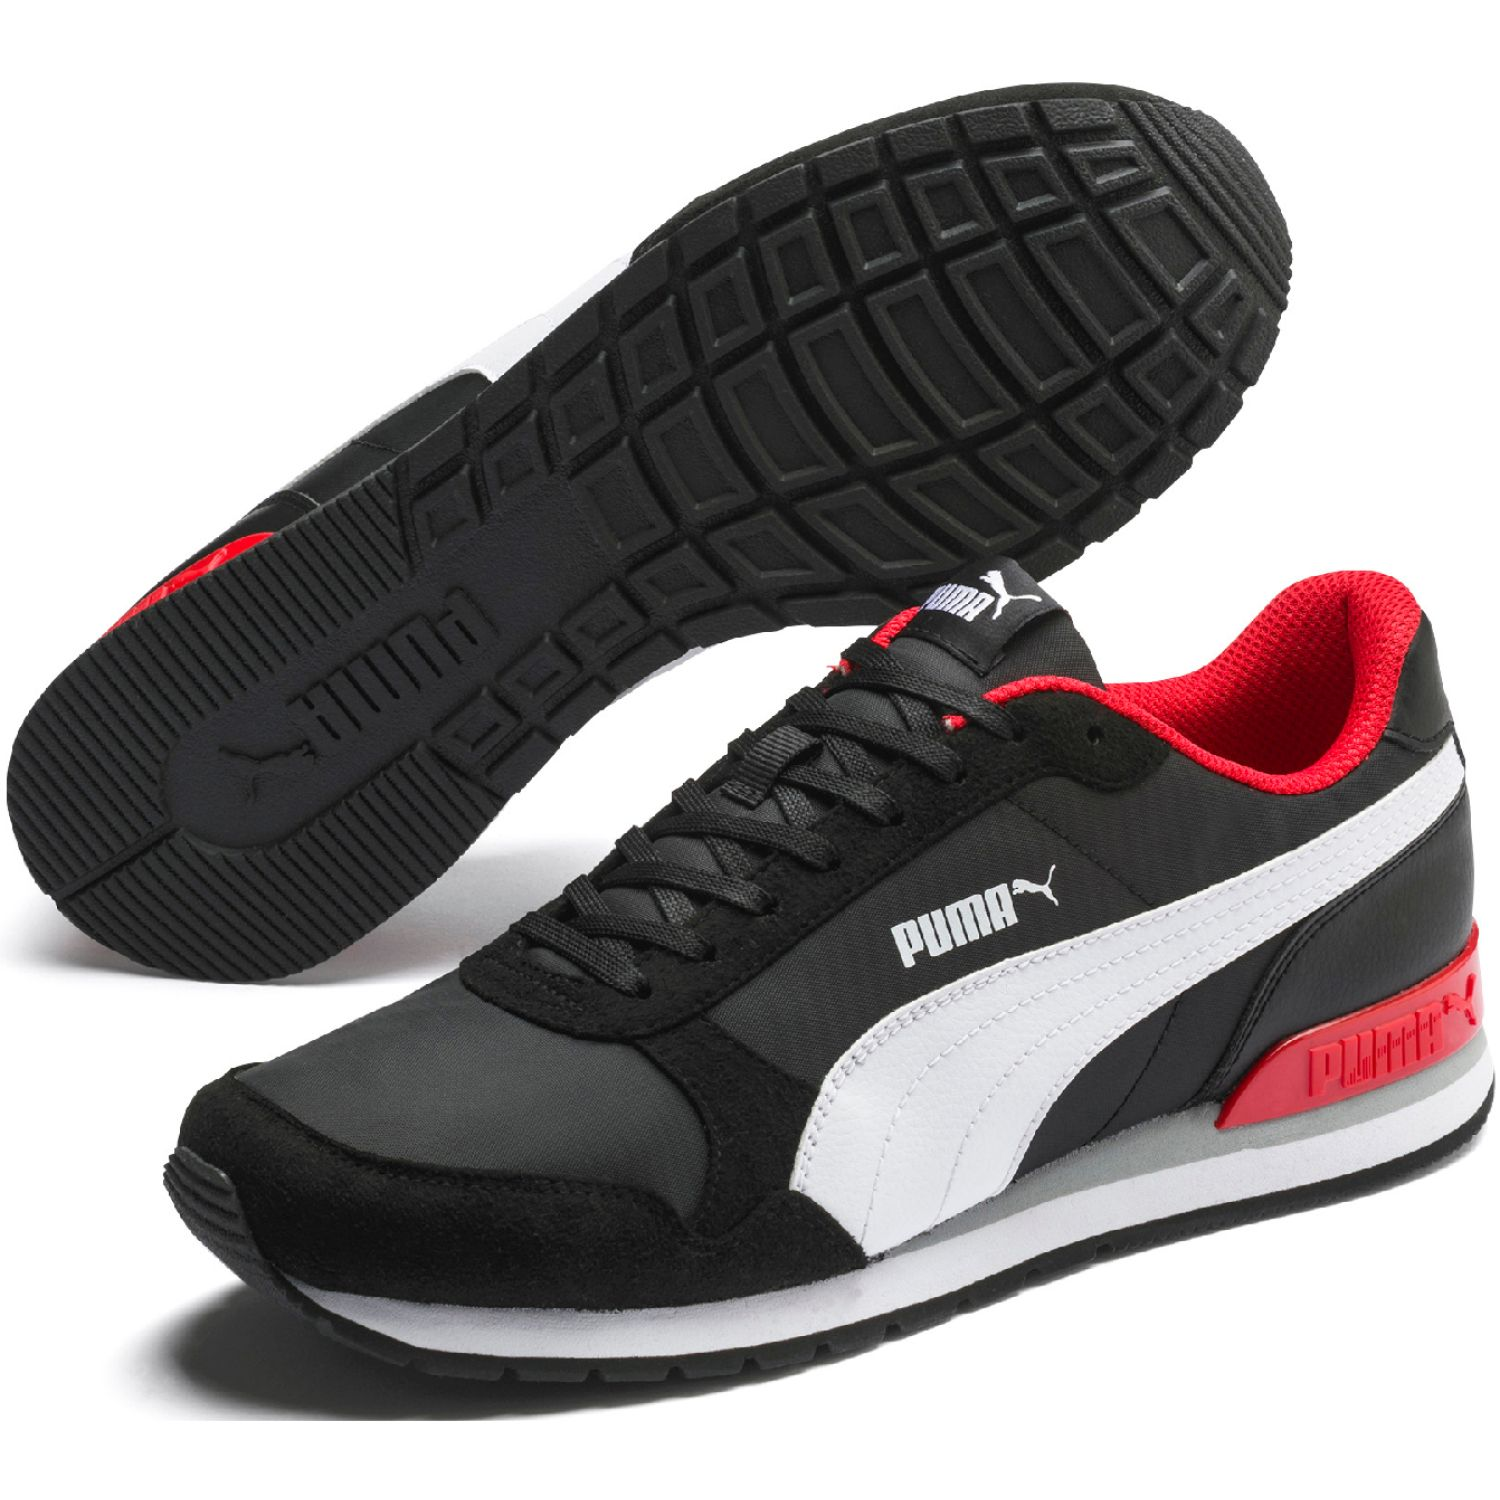 Puma st runner v2 nl Negro / rojo Walking